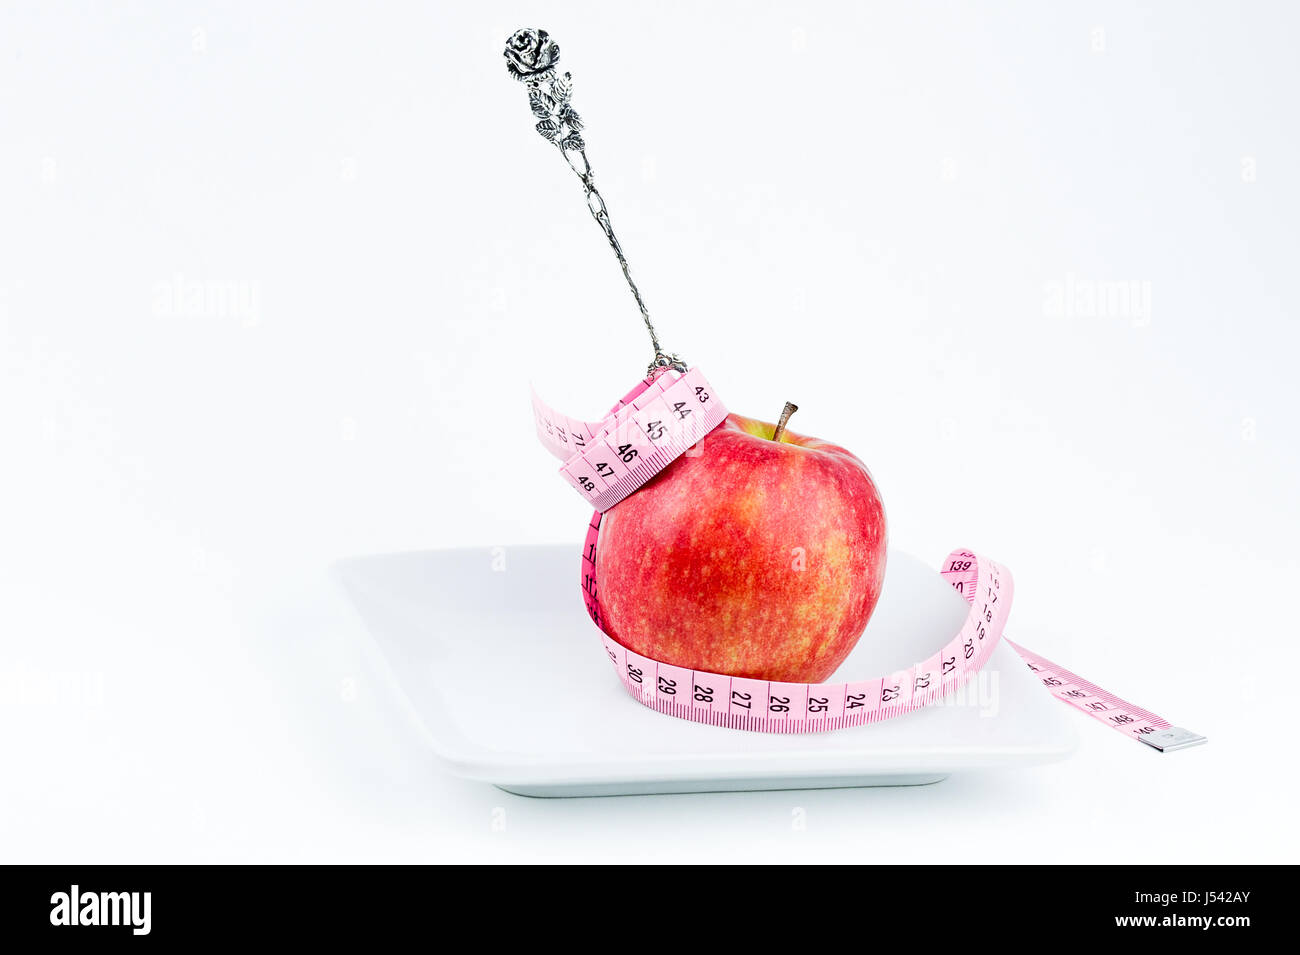 silver fork in apple on a plate with measuring tape, diet concept - Stock Image